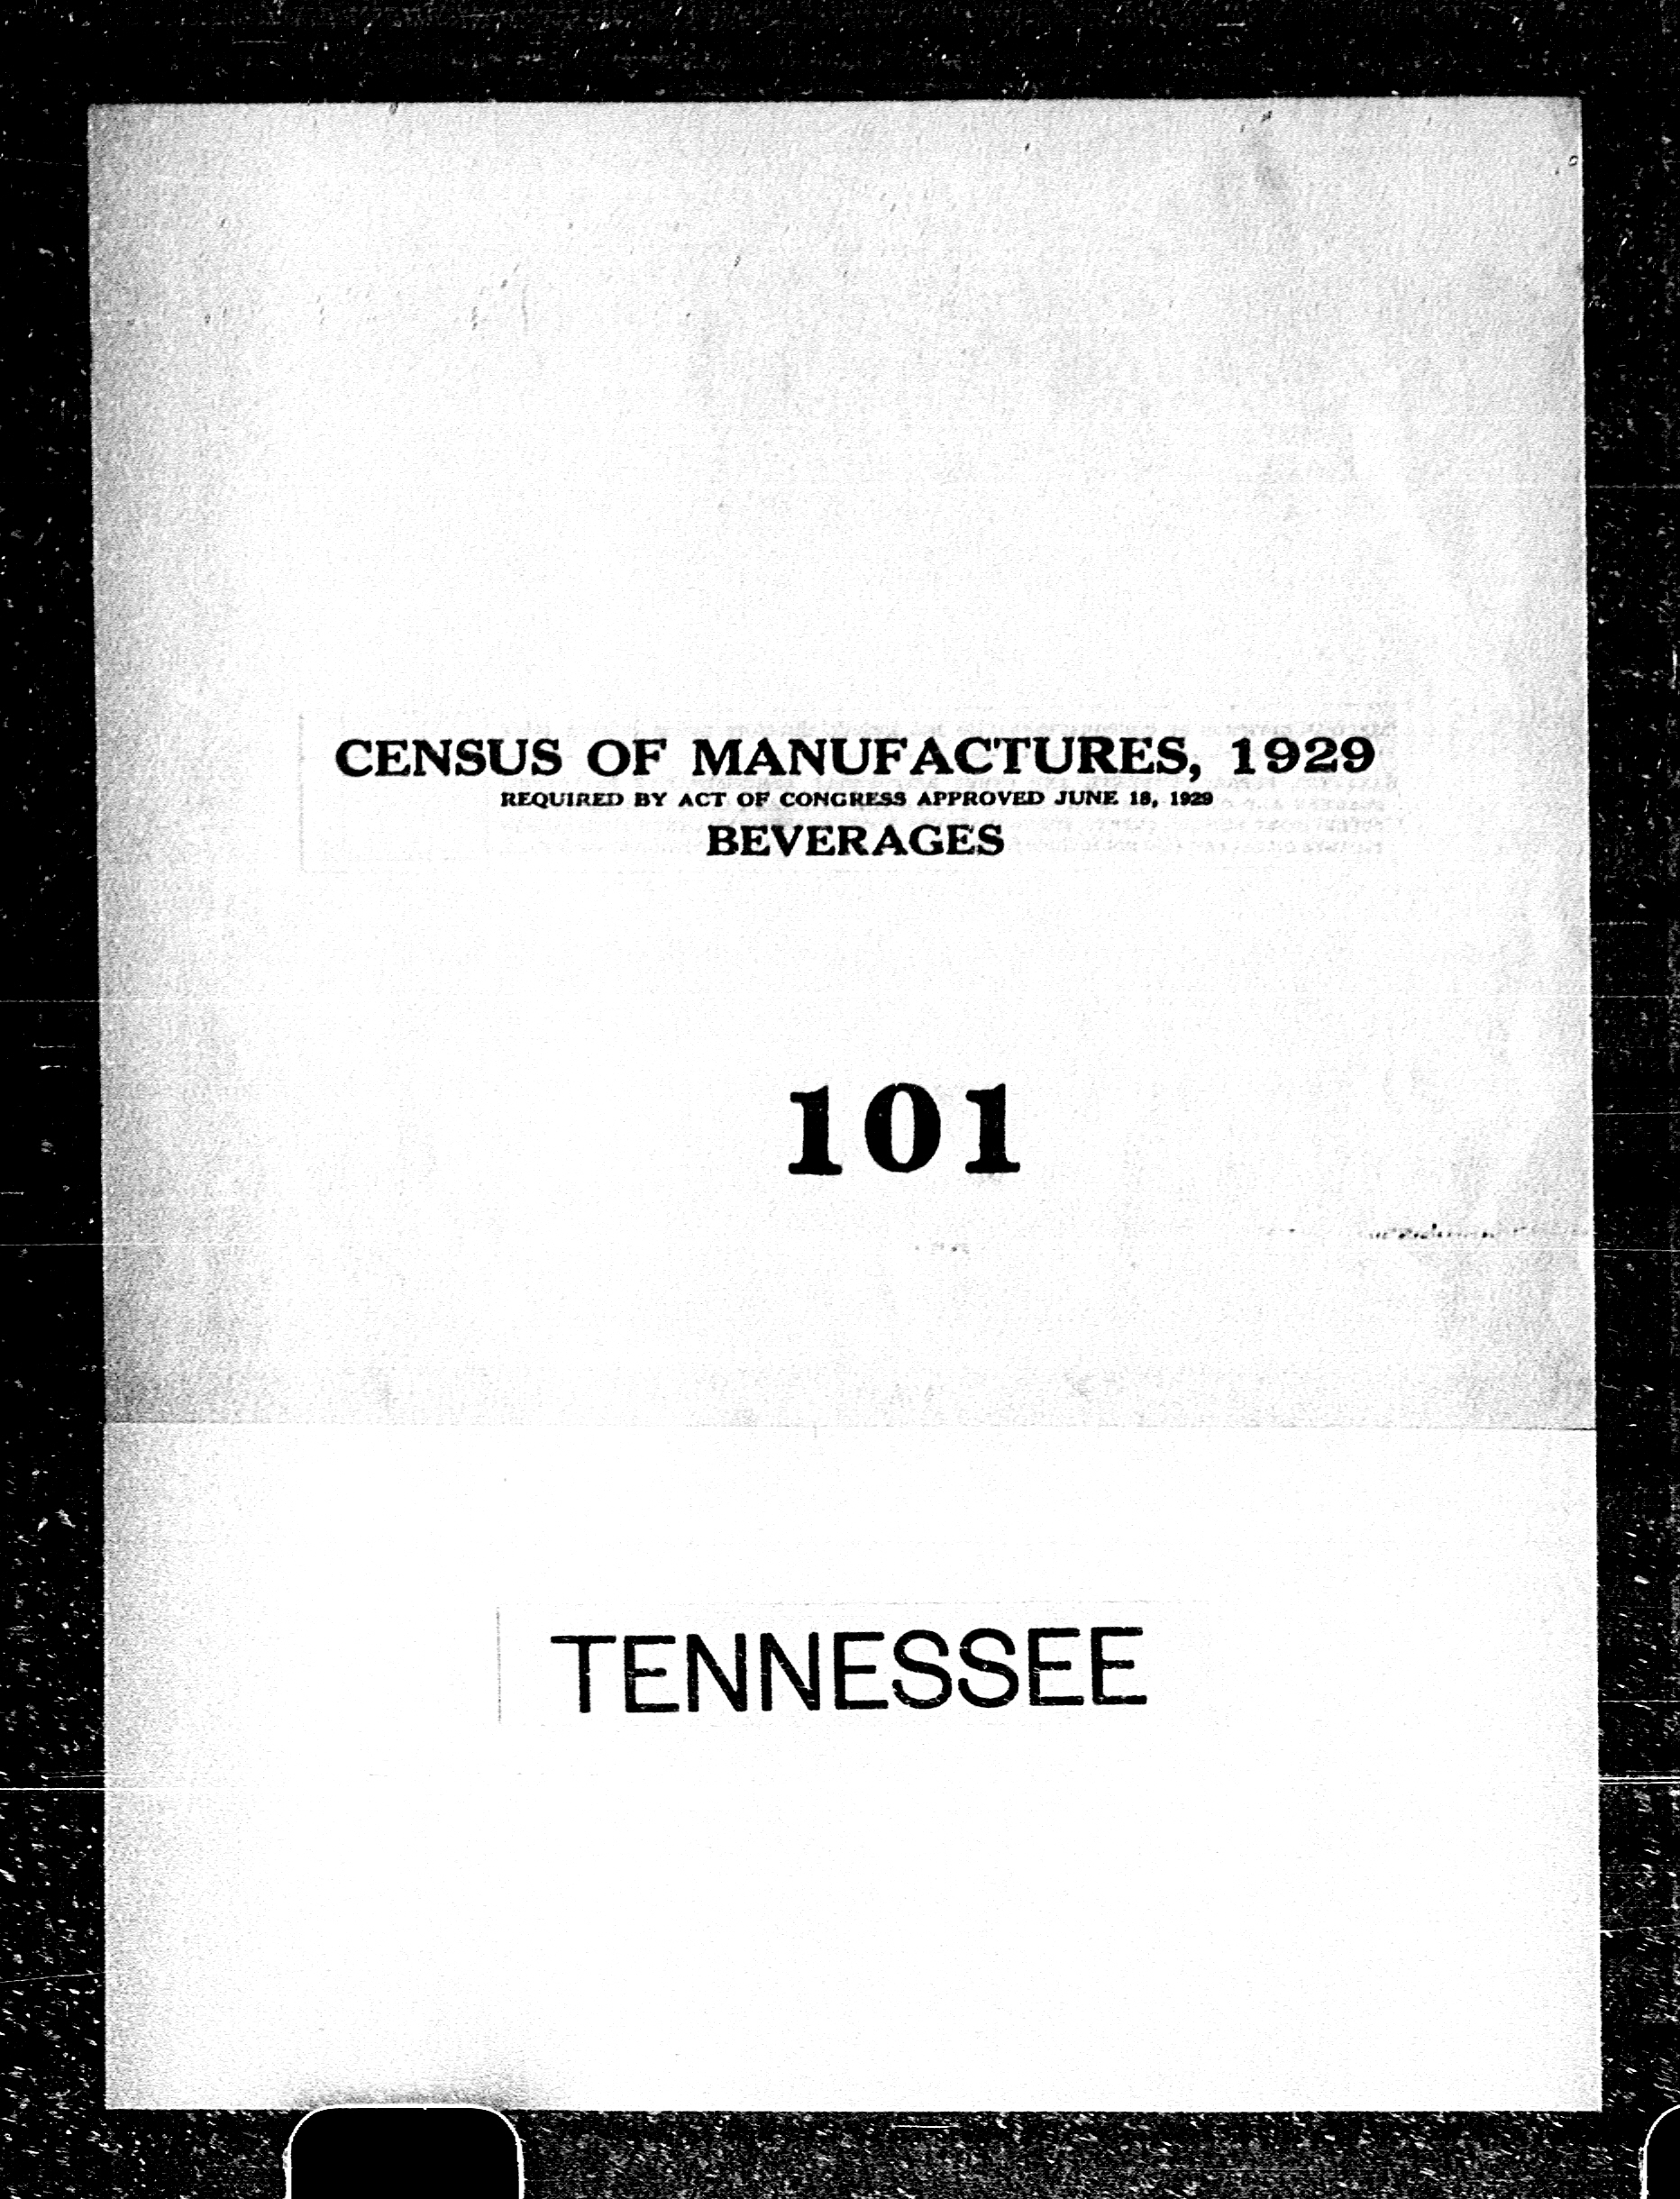 Tennessee: Industry No. 101 - Beverages